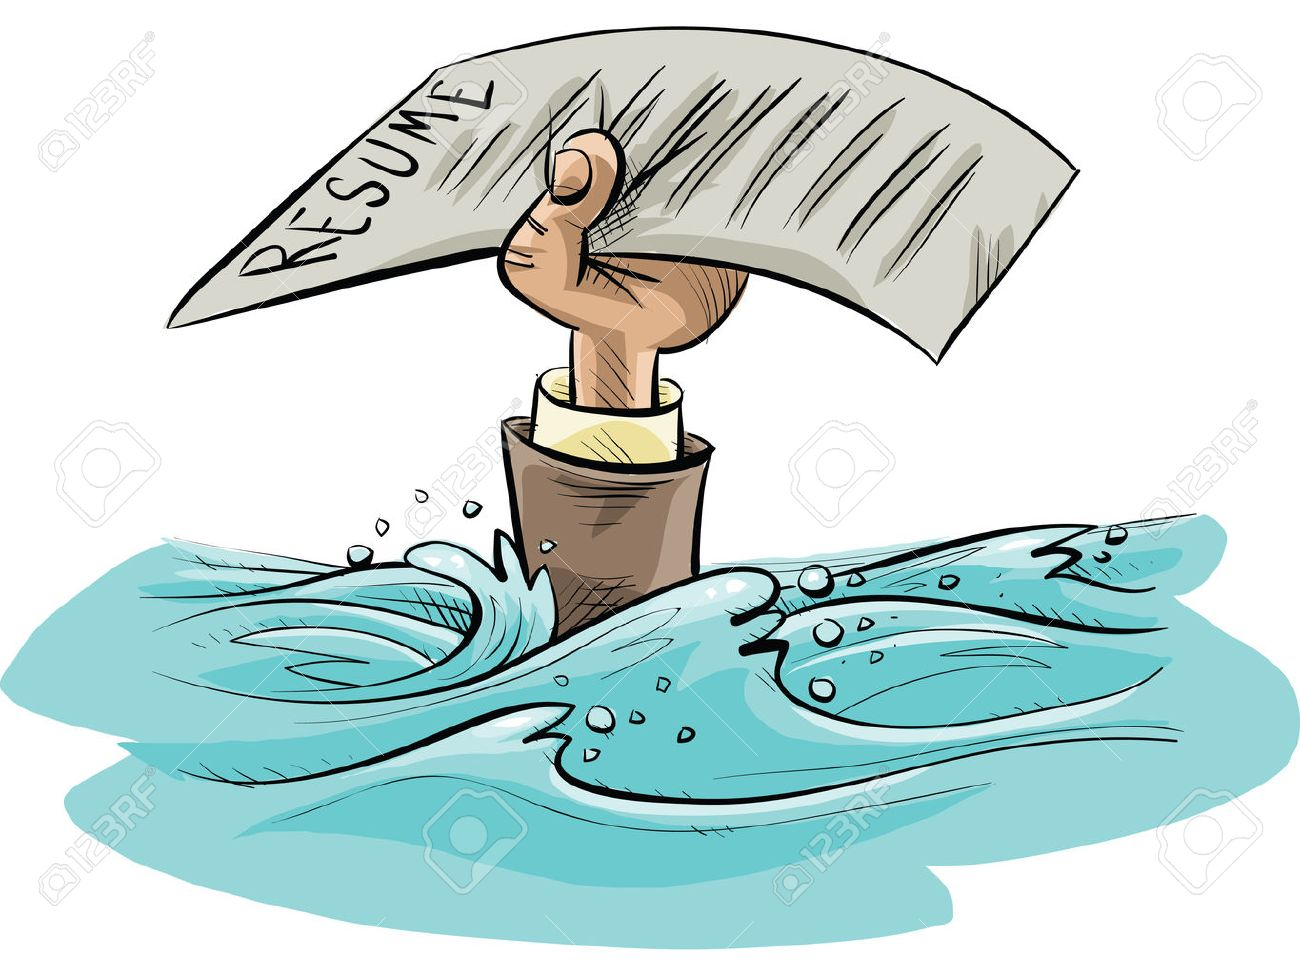 The Cartoon Hand Of A Drowning Person Holds Up A Resume As A